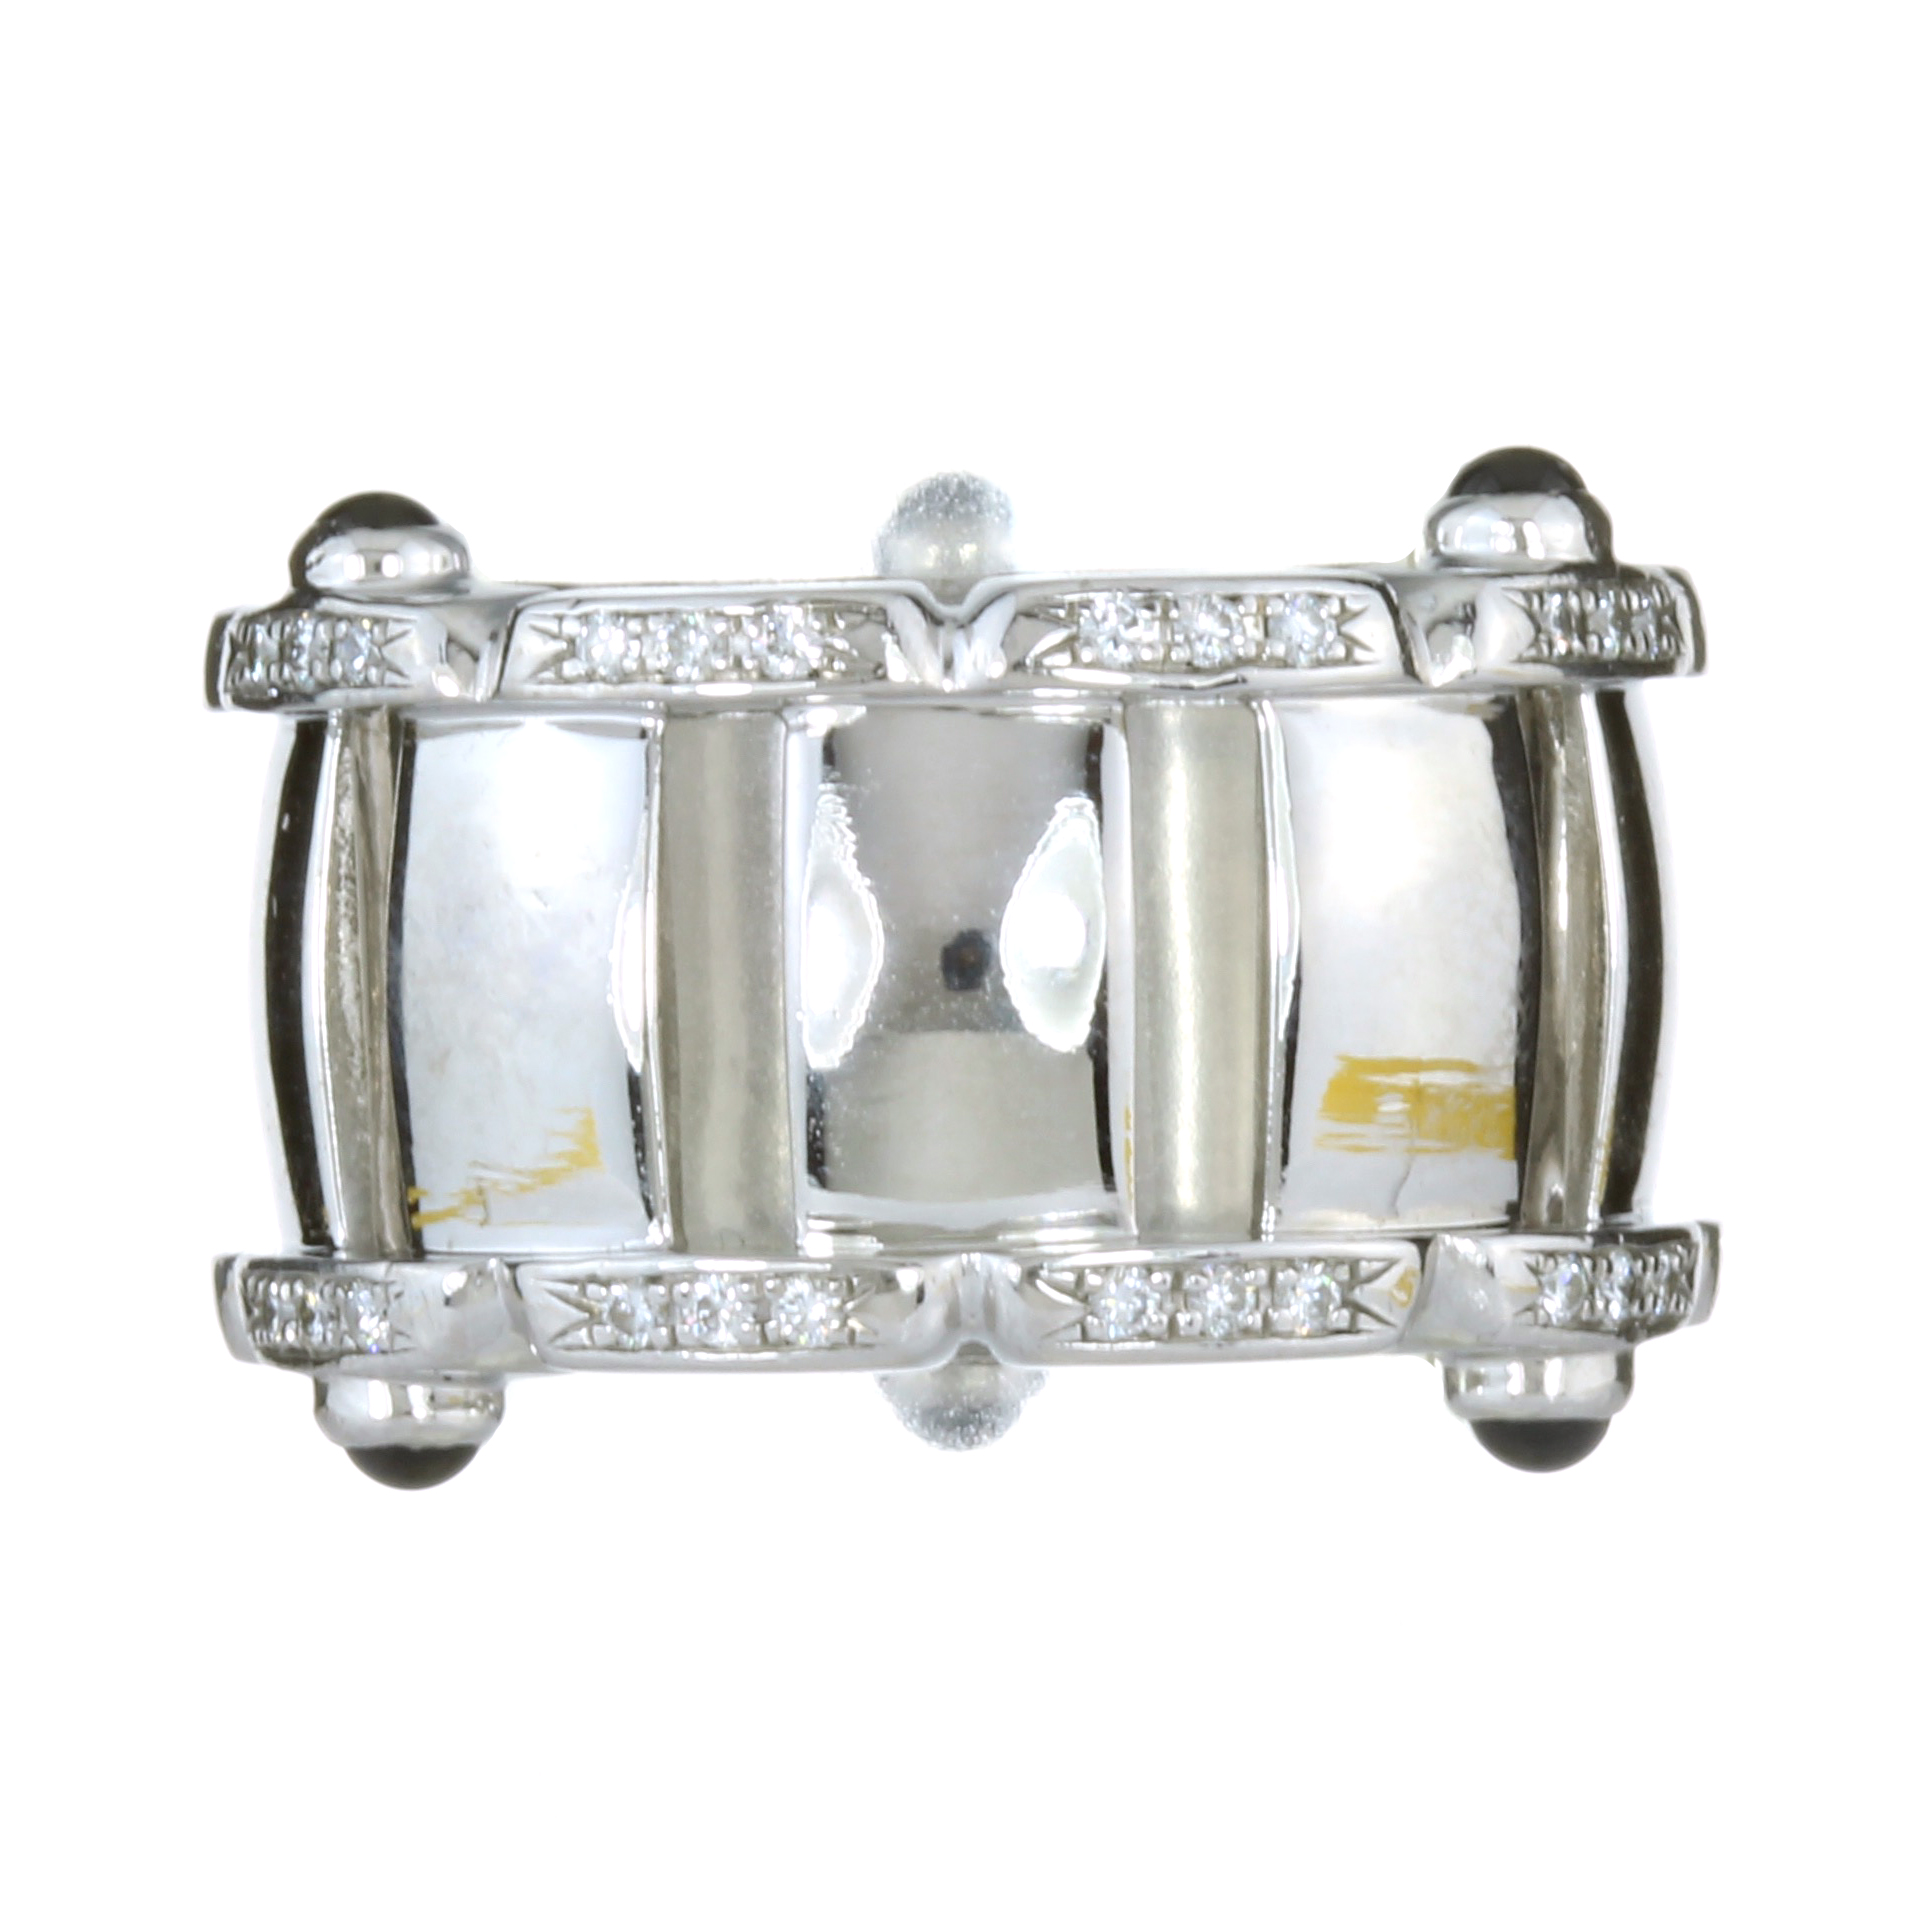 Los 43 - A SAPPHIRE AND DIAMOND TWENTY-4 RING BY PATEK PHILIPPE in 18ct white gold, designed with off-set